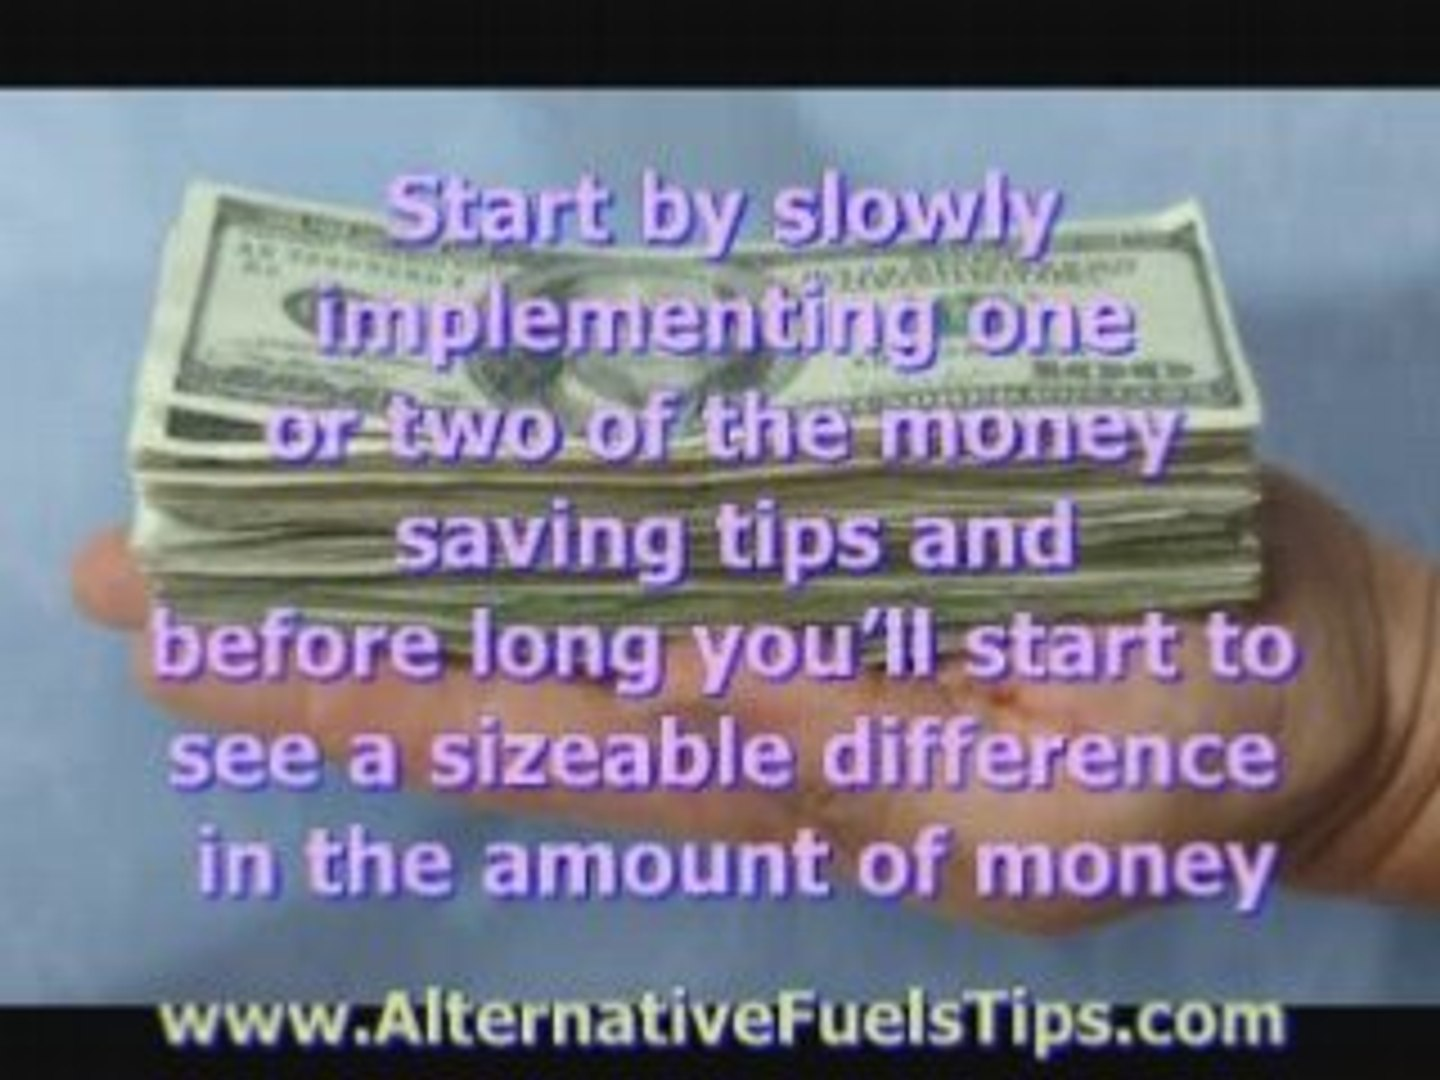 Super Gas Saver - Save Money, Save the World From Pollution